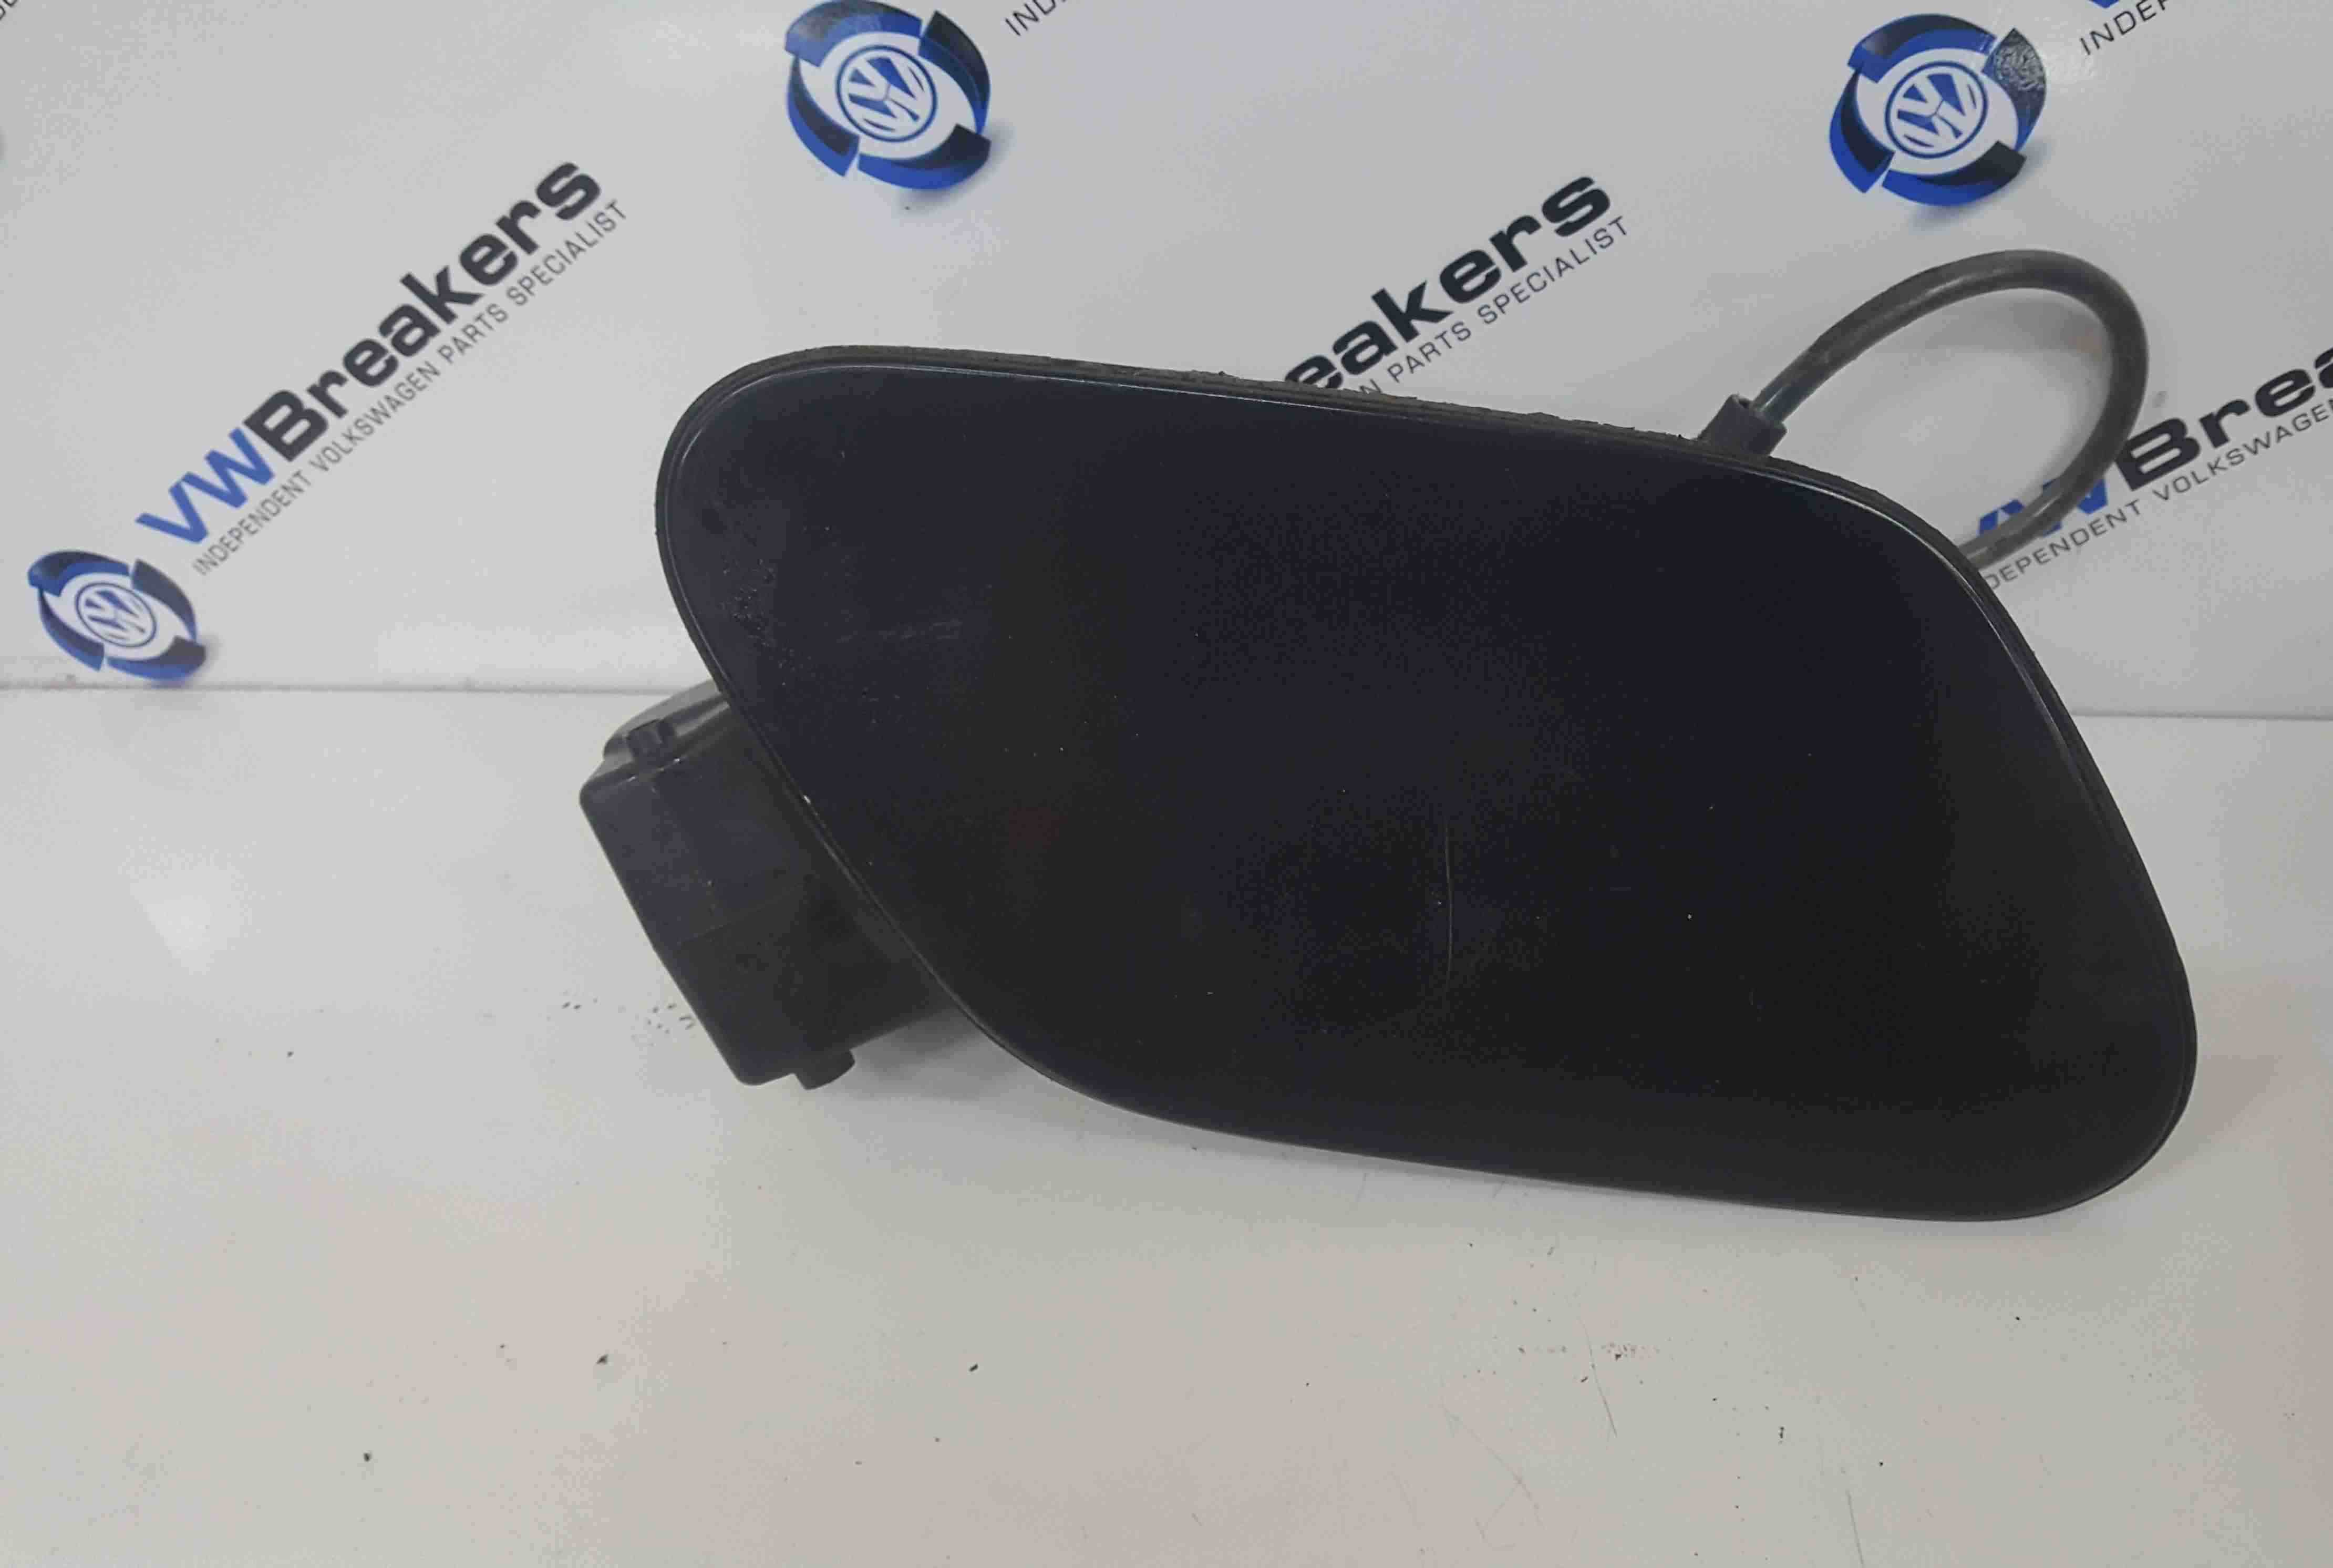 Volkswagen Golf MK7 2012-2017 Fuel Flap Cover Black LC9X + Hinges 5G0809857